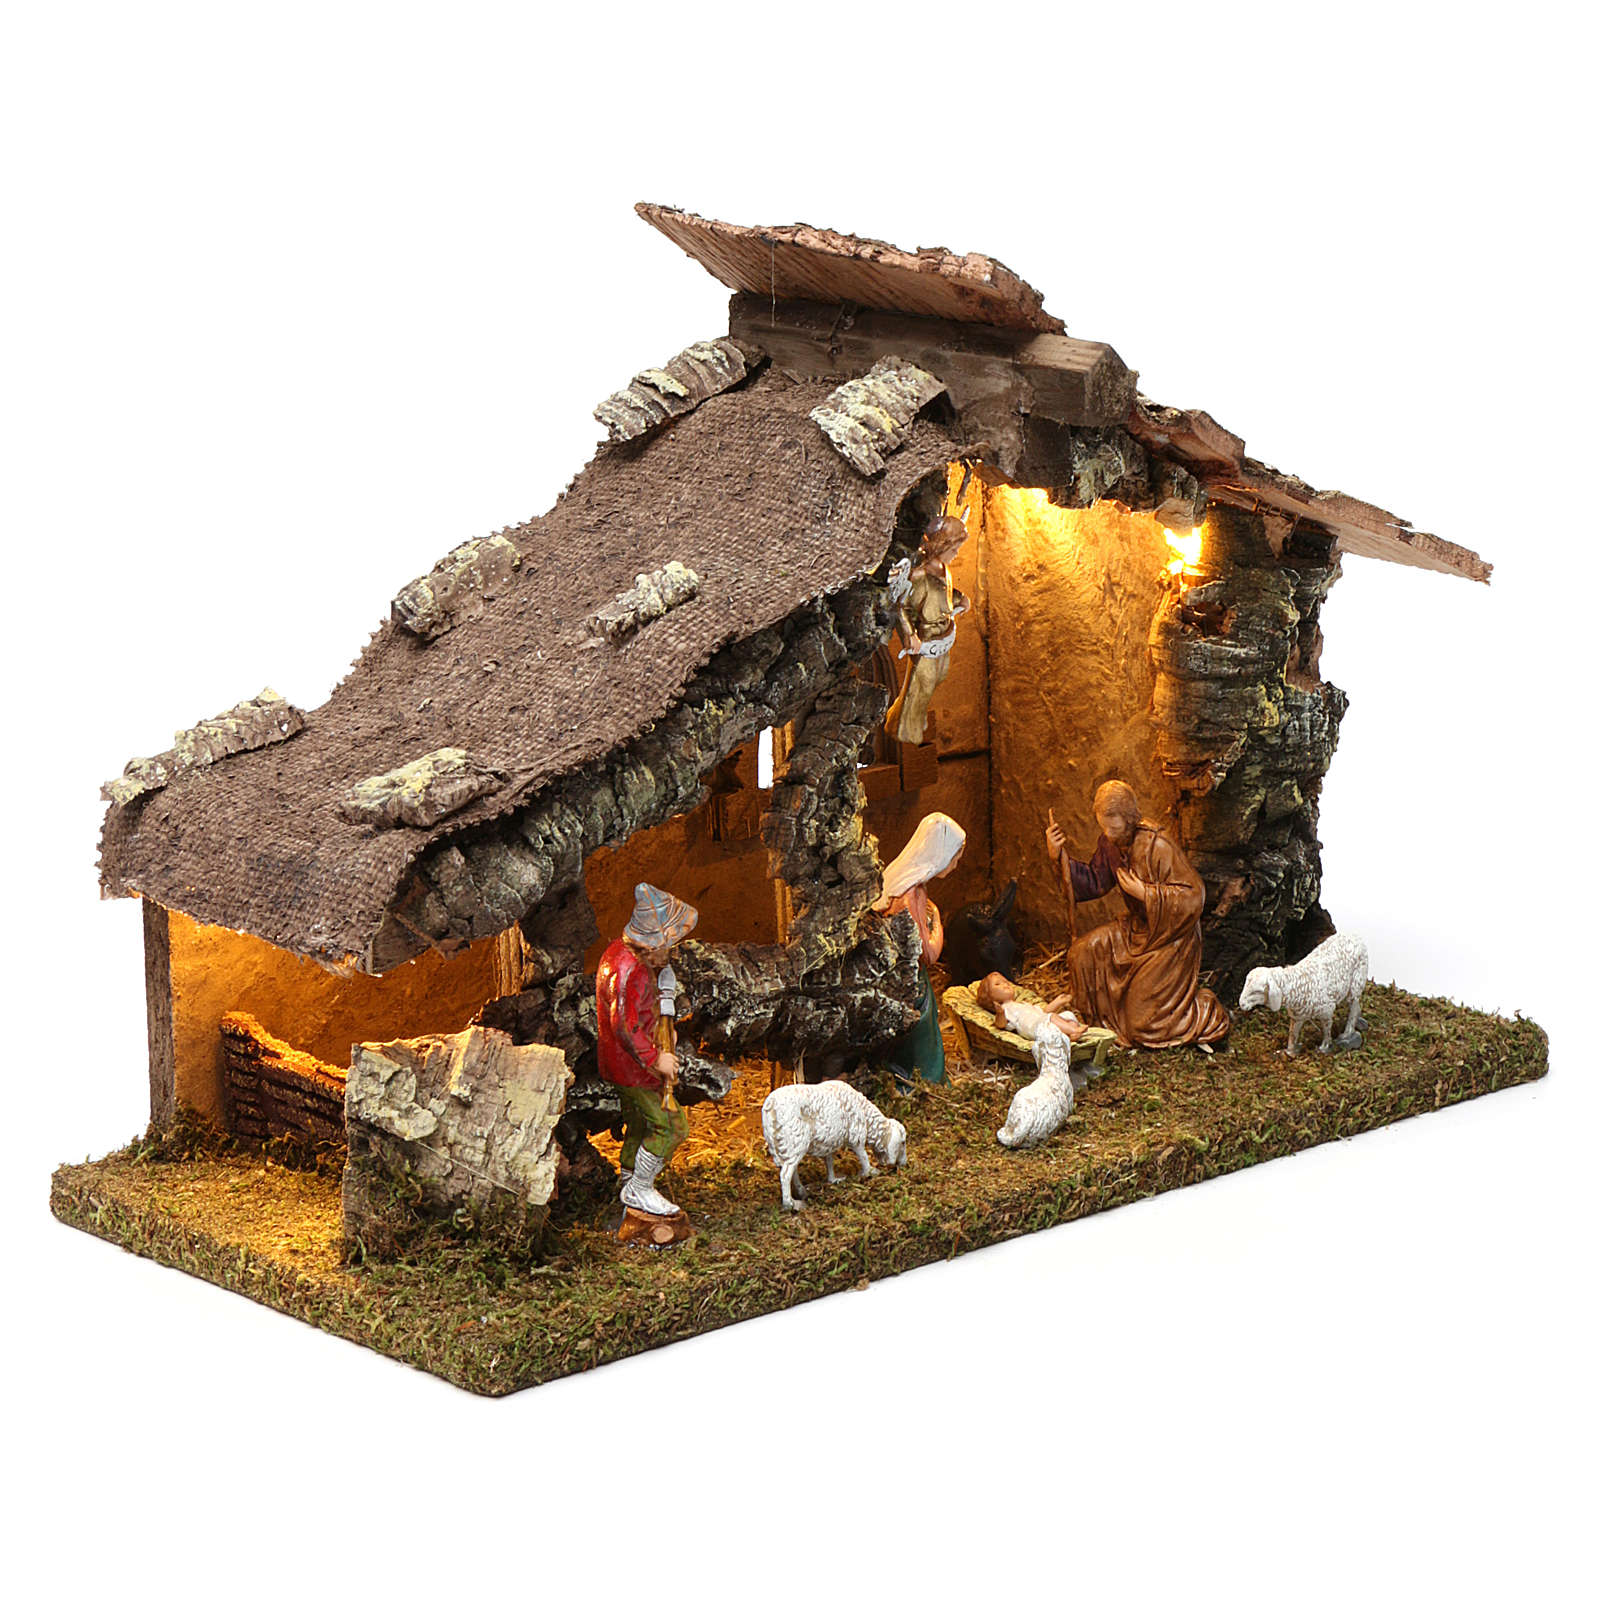 Wood Barn LED lights 30X40X20 cm with complete nativity 4